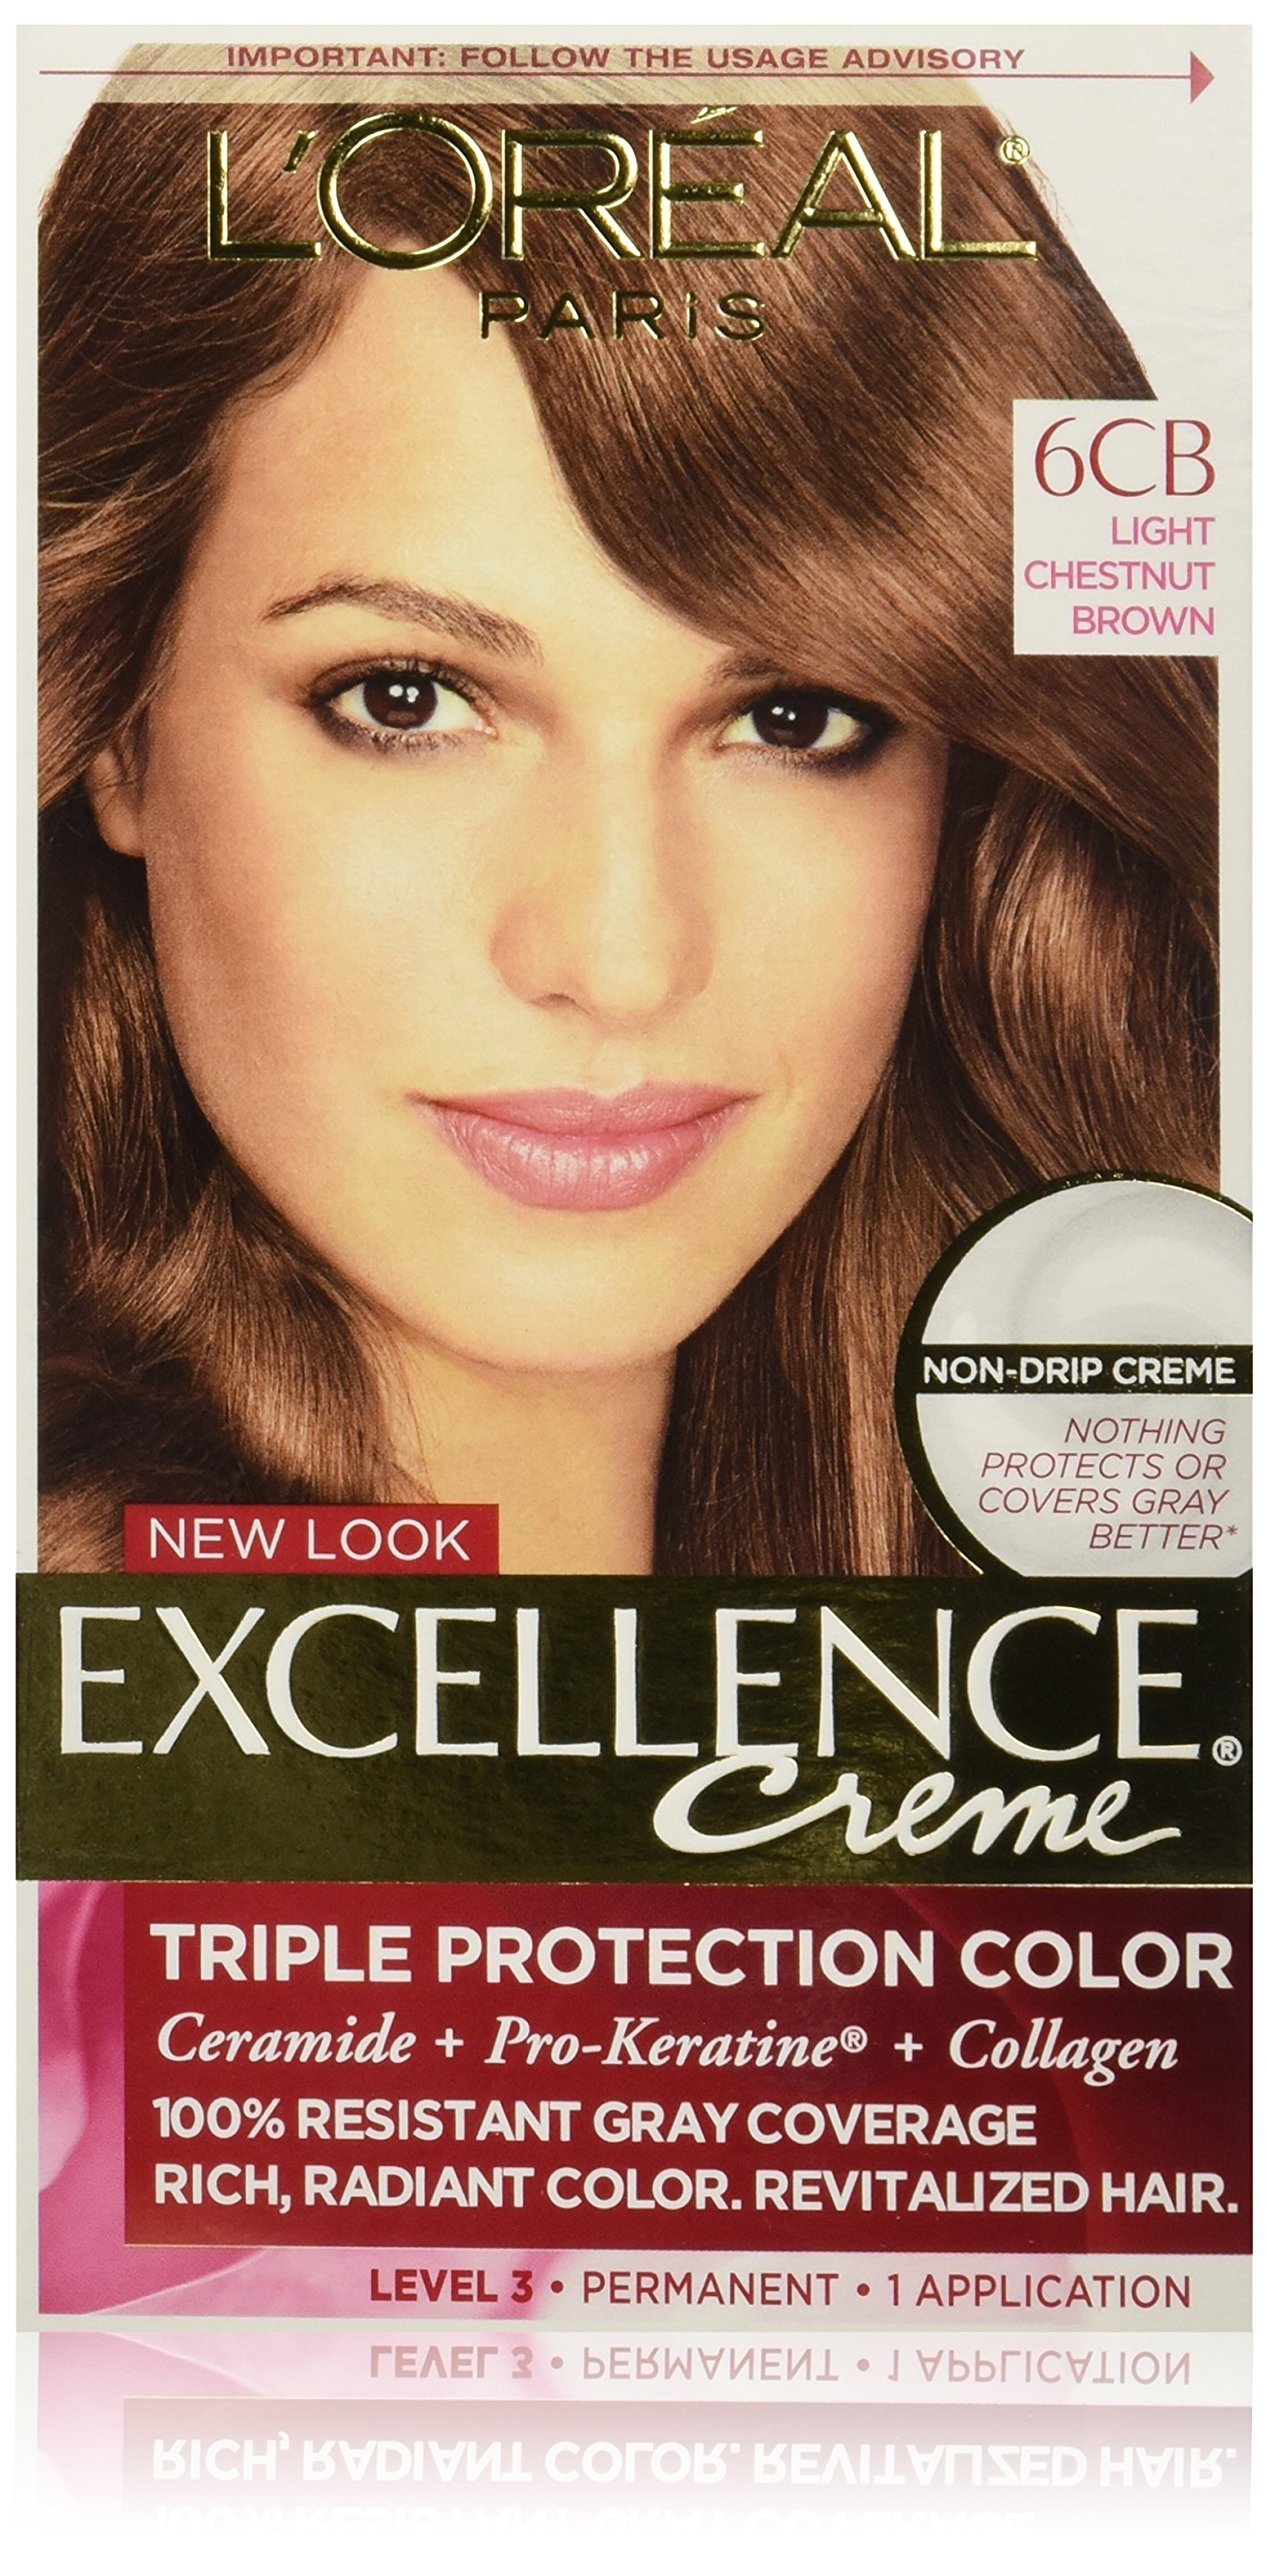 Cheap Chestnut Brown Hair Color Find Chestnut Brown Hair Color